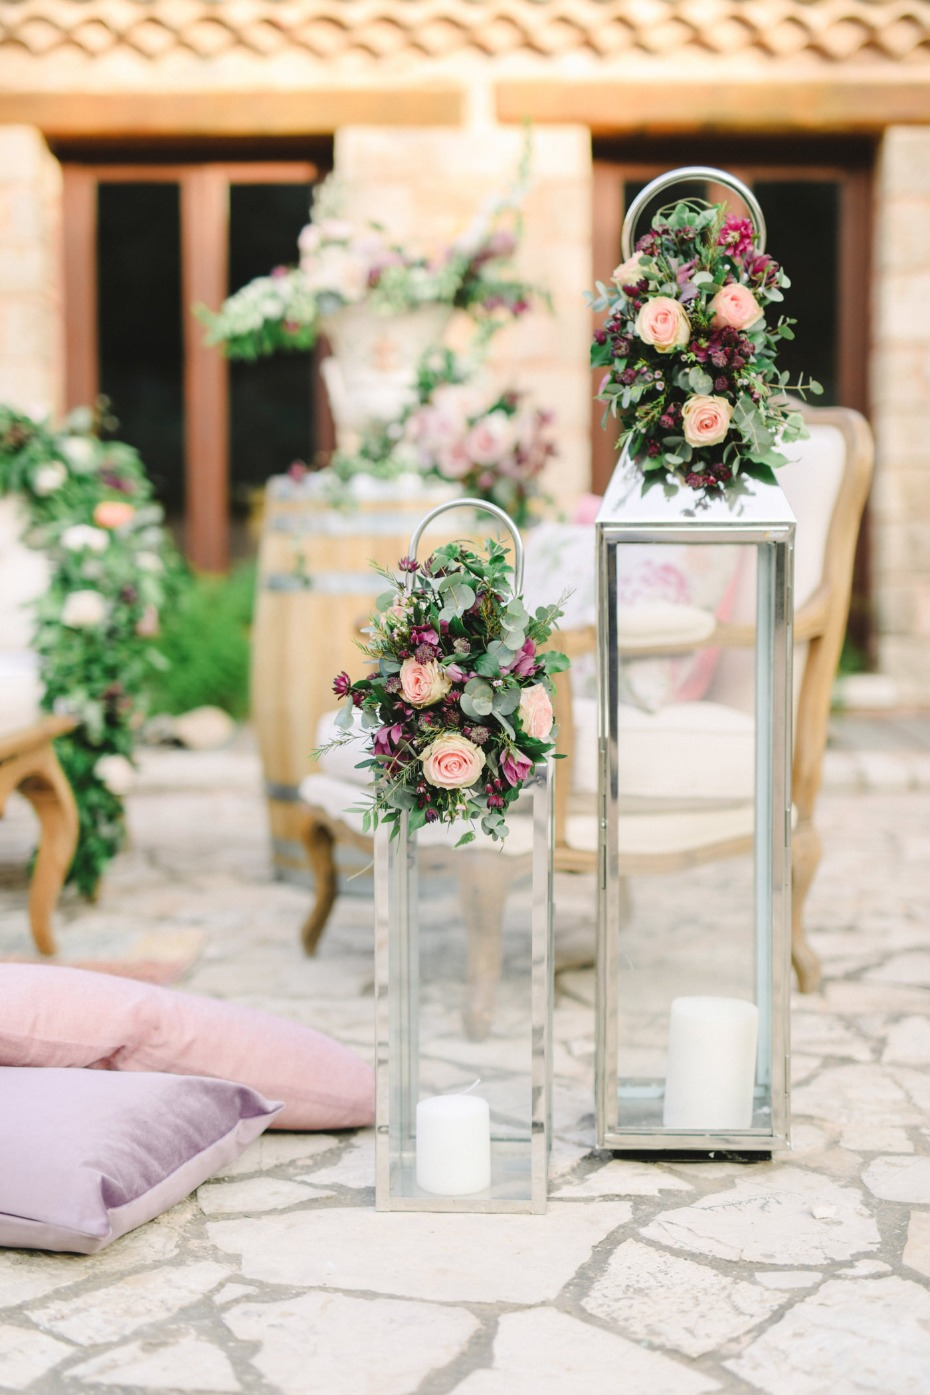 Wedding decor florals